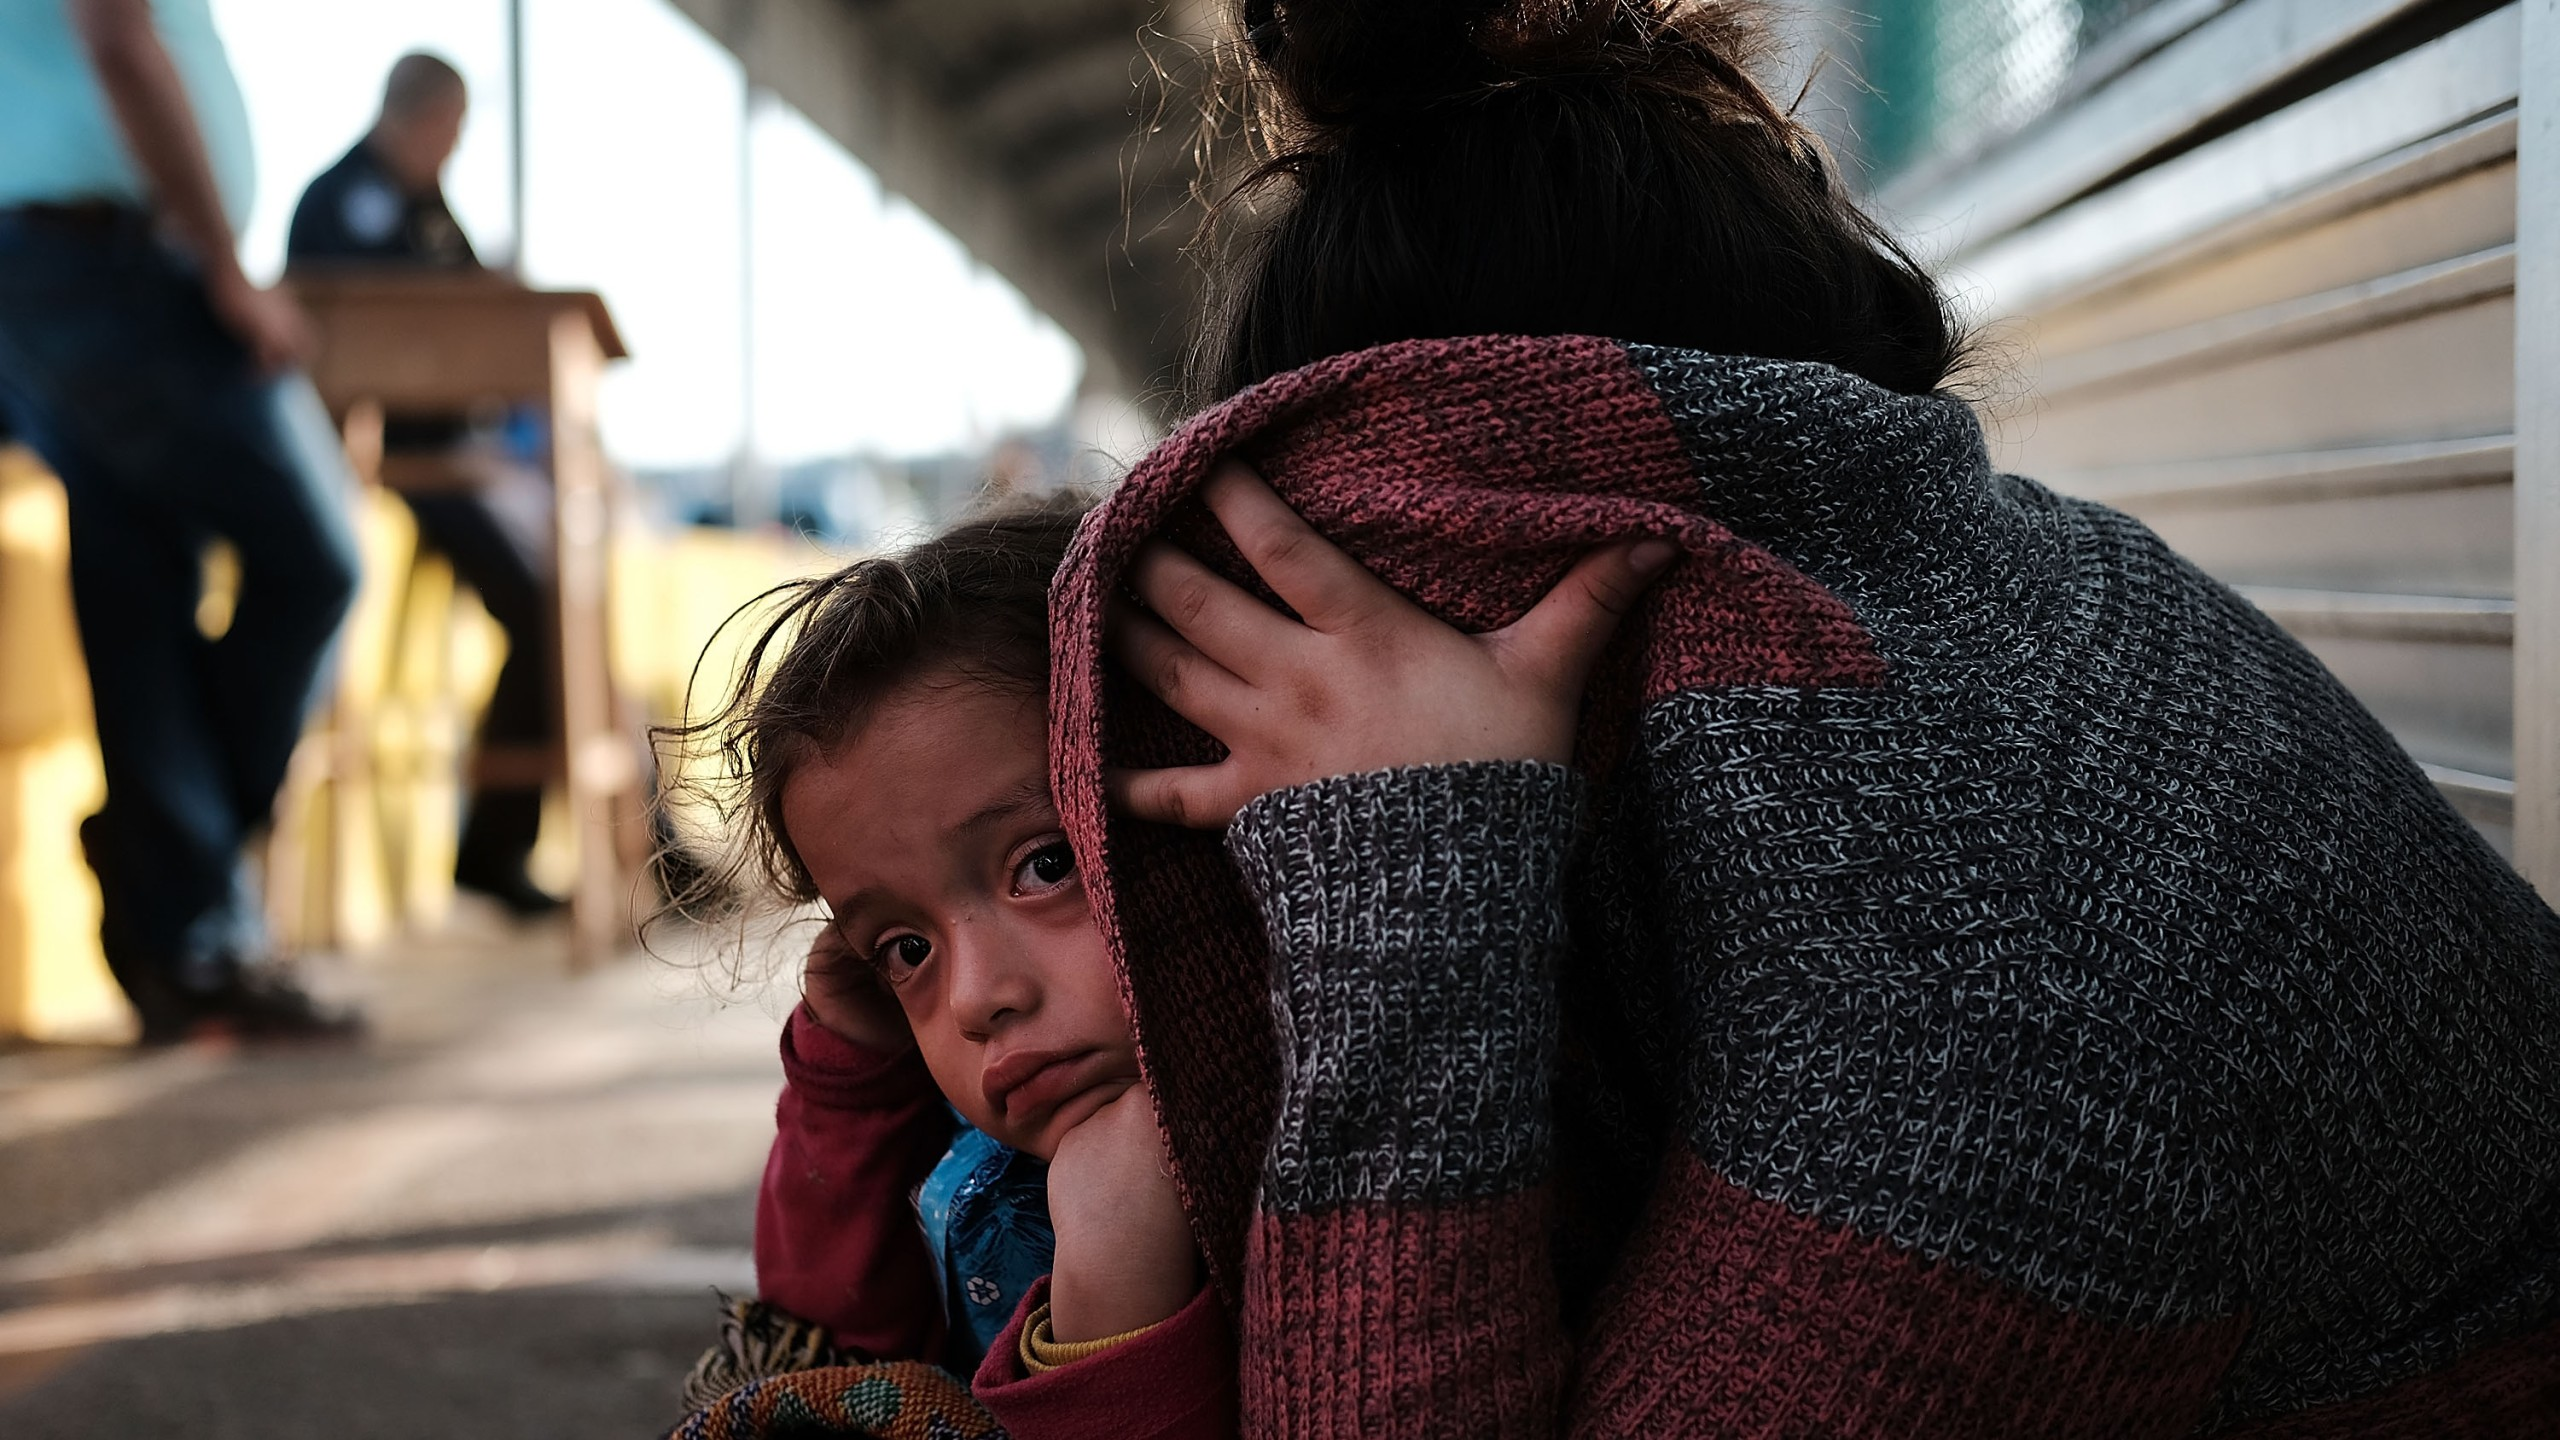 A Honduran child and her mother, fleeing poverty and violence in their home country, waits along the border bridge after being denied entry from Mexico into the U.S. on June 25, 2018 in Brownsville, Texas. (Credit: Spencer Platt/Getty Images)